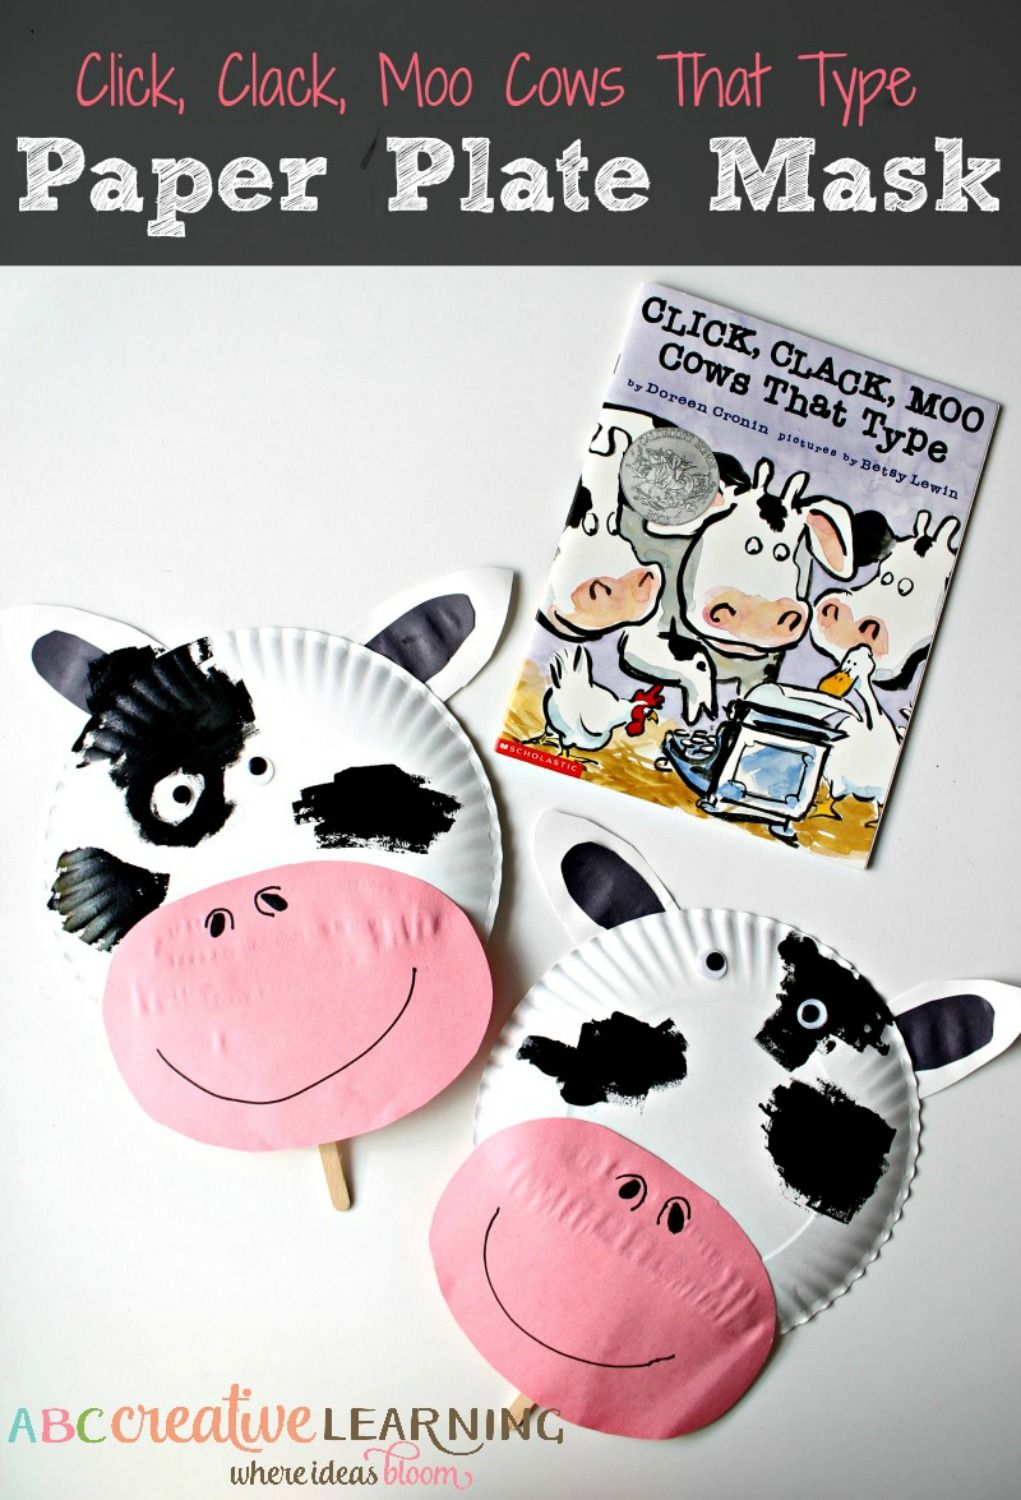 Click Clack Moo Cows That Type Cow Paper Plate Mask - abccreativelearning.com & Click Clack Moo Cows That Type Cow Paper Plate Mask | Paper plate ...